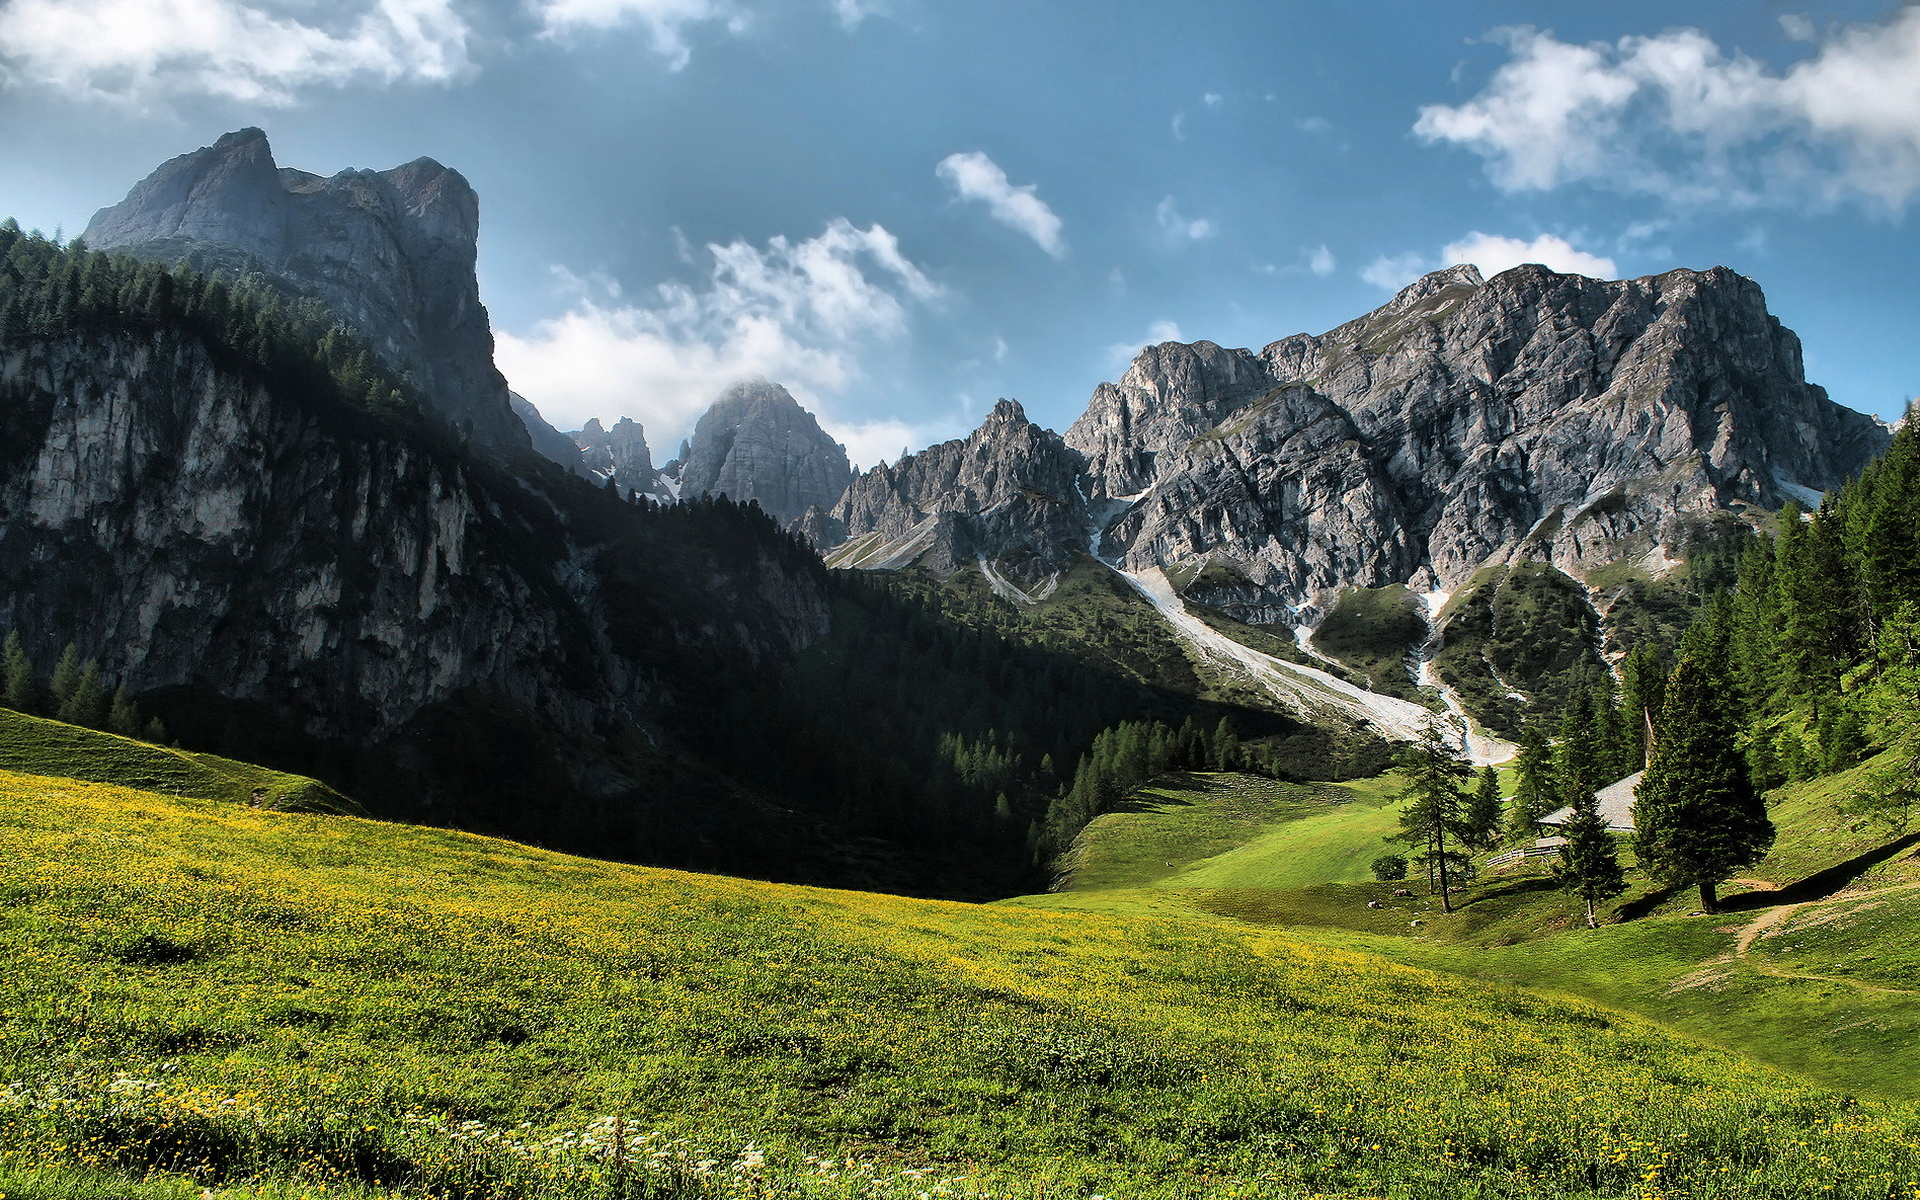 33025 download wallpaper Landscape, Mountains screensavers and pictures for free